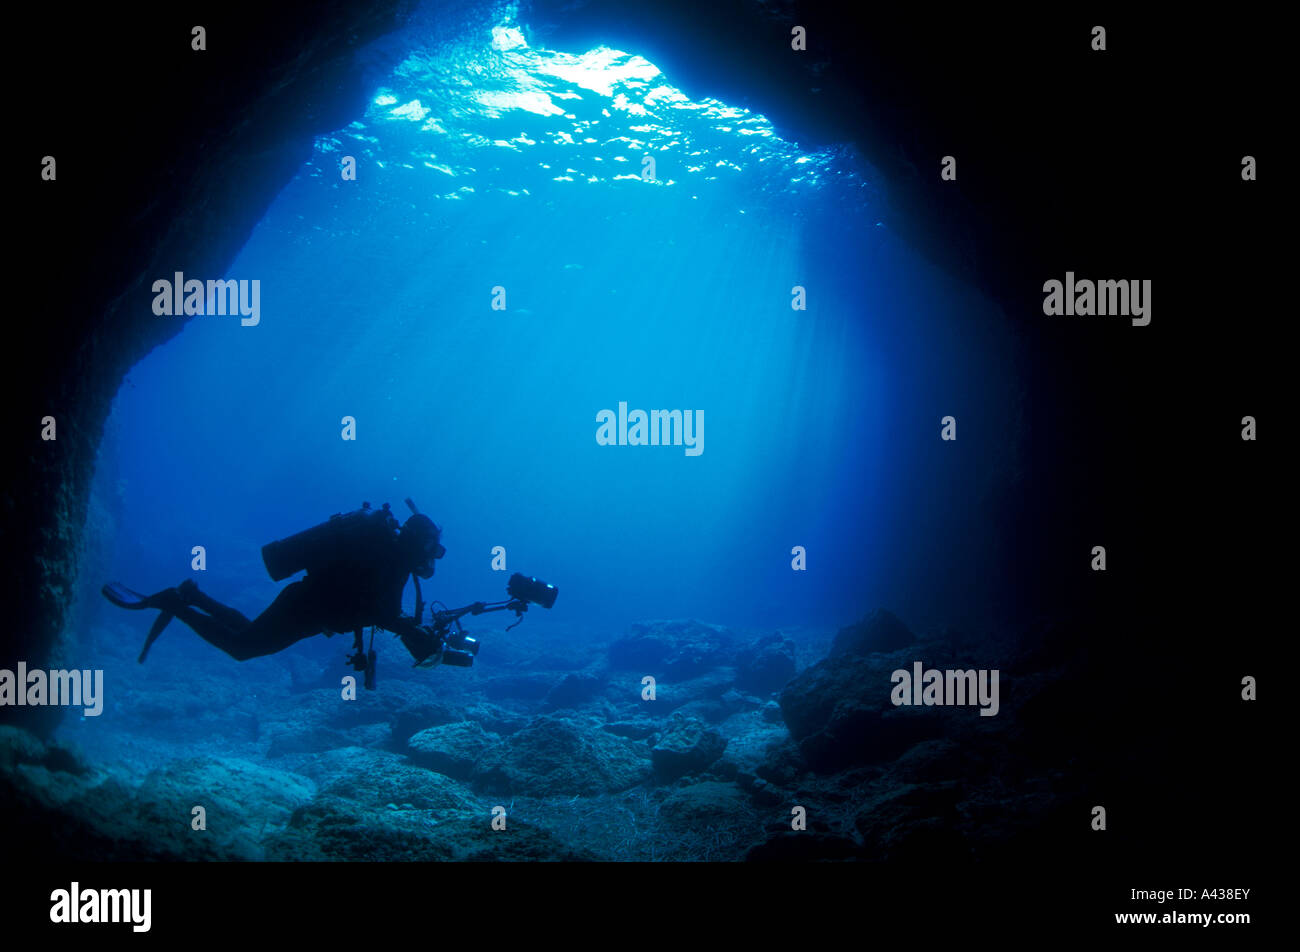 Underwater photographer at the entrance of a marine cave, Fethiye Turkey. - Stock Image